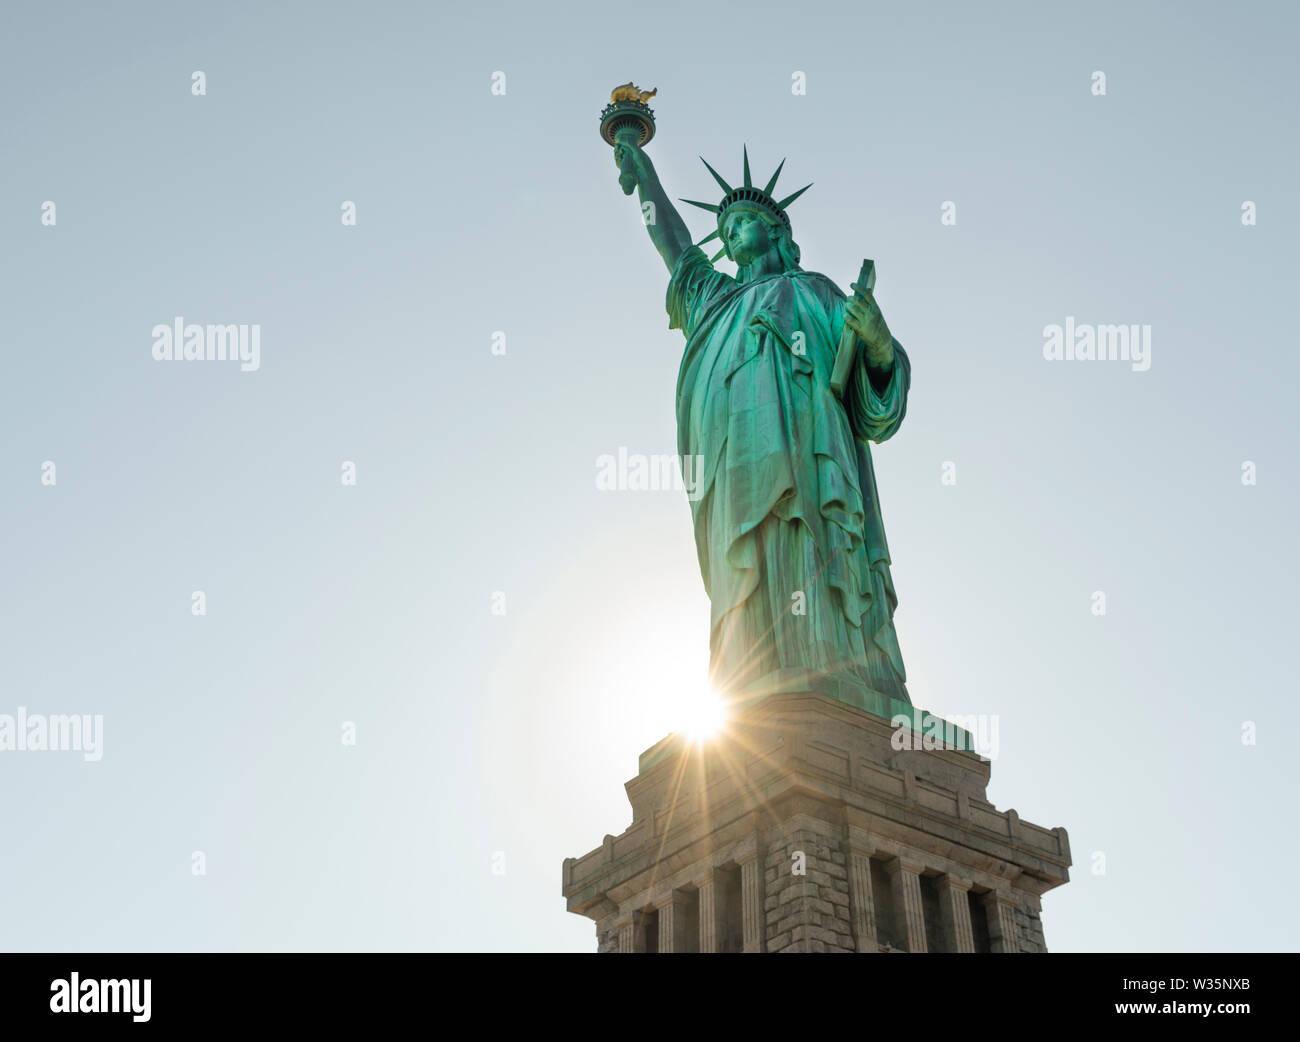 It's a cutout on white of lady liberty in the Statue of Liberty - Stock Image